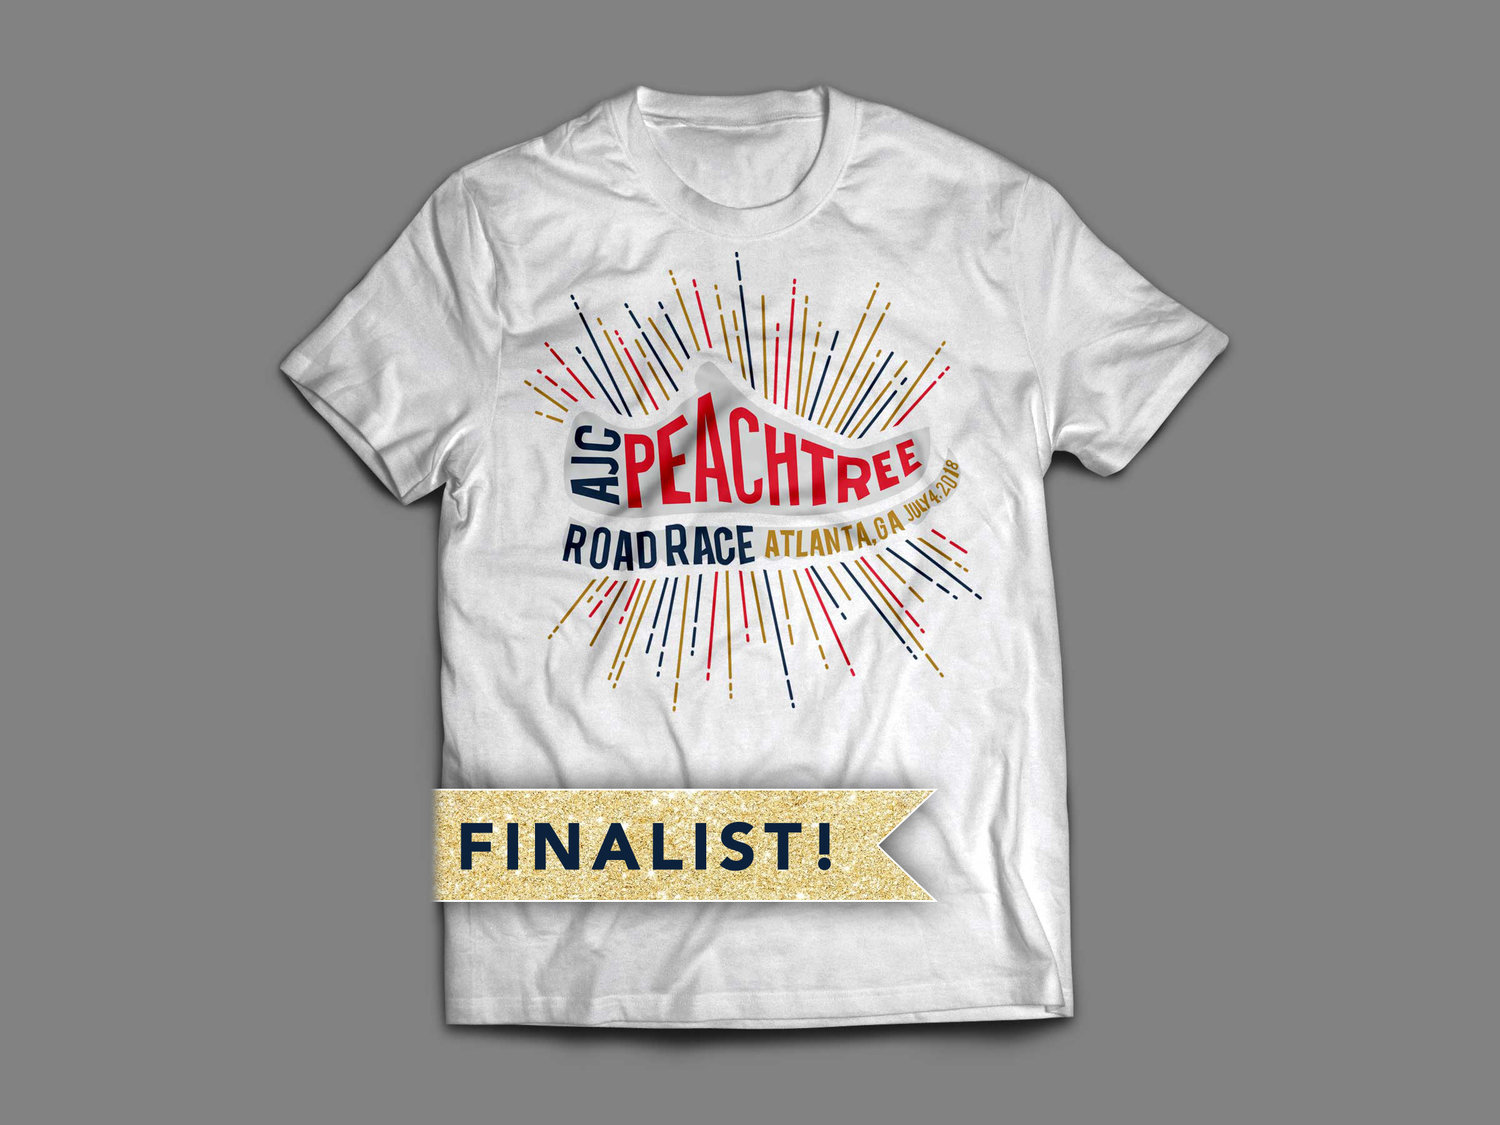 Peachtree Road Race T Shirt Designs Summer Cook